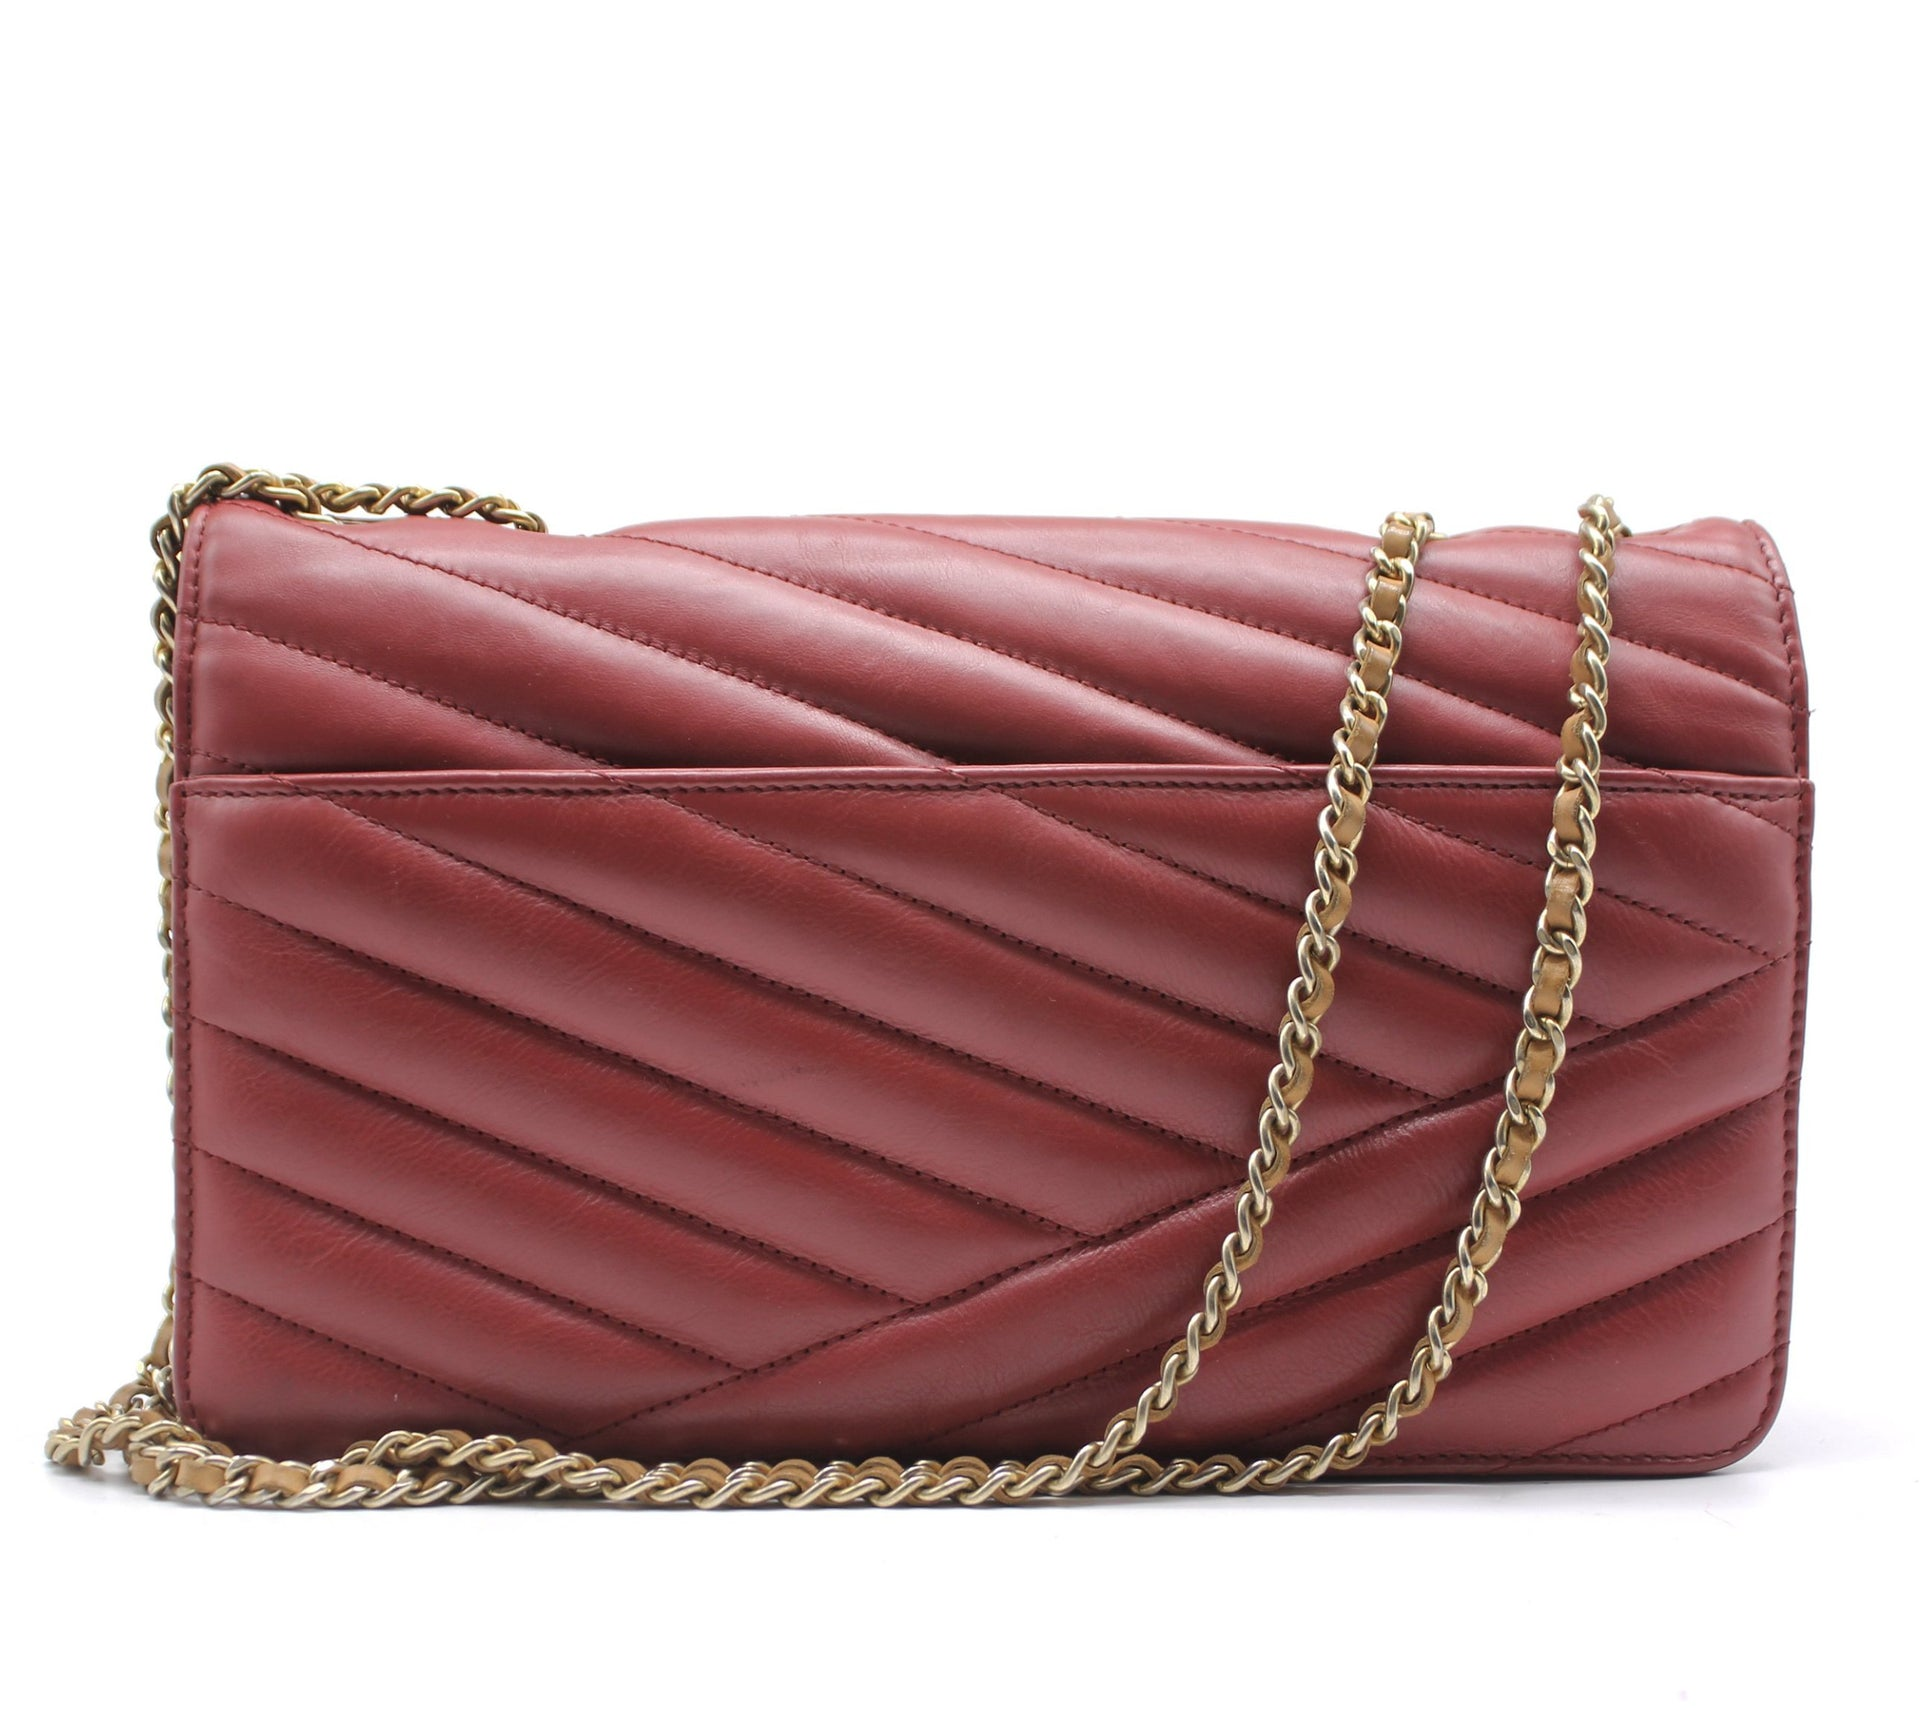 Chanel Gabrielle Flap Bag Chevron Leather